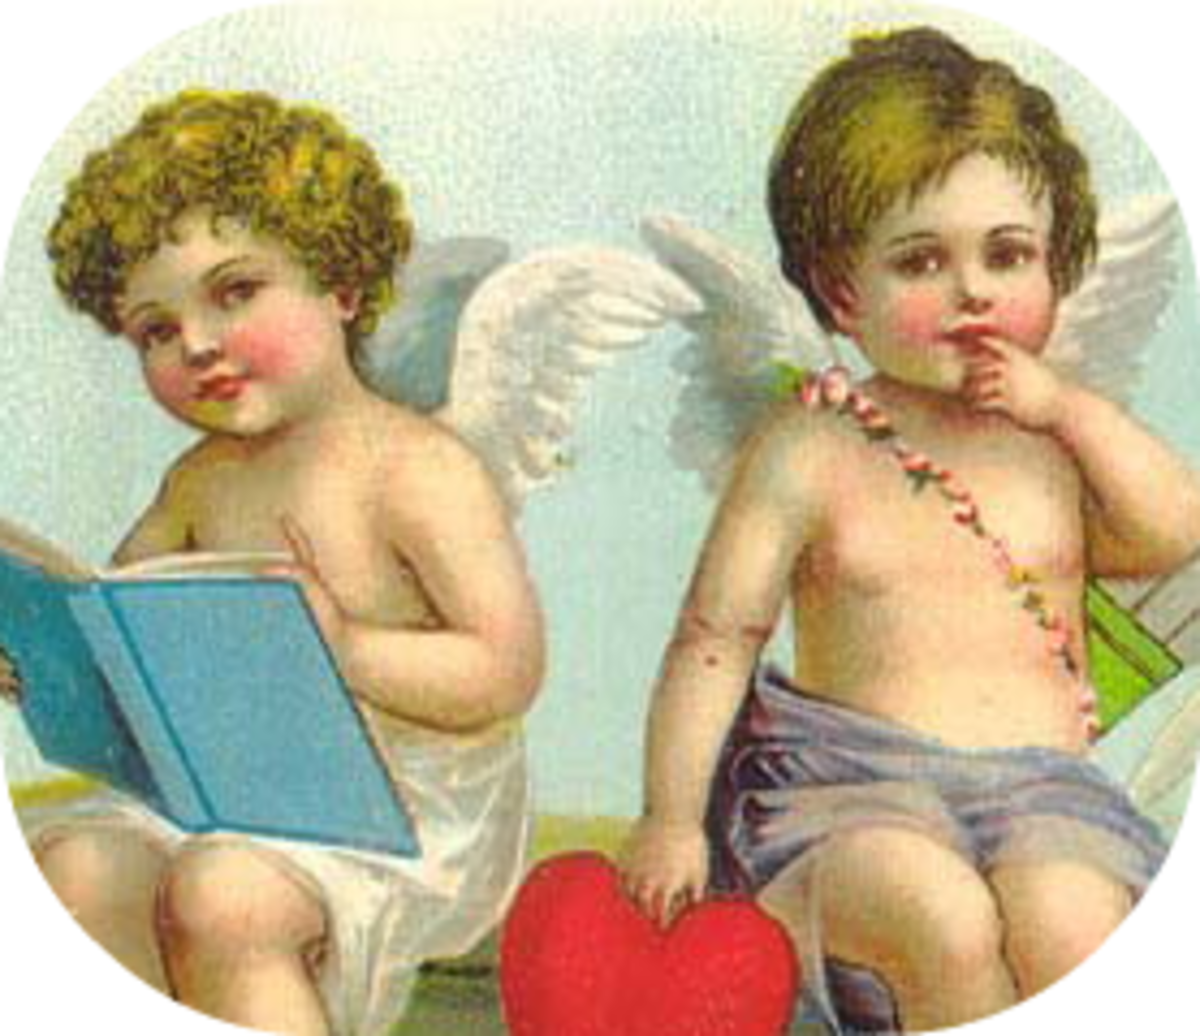 Two vintage Valentine's Day cherubs clip art